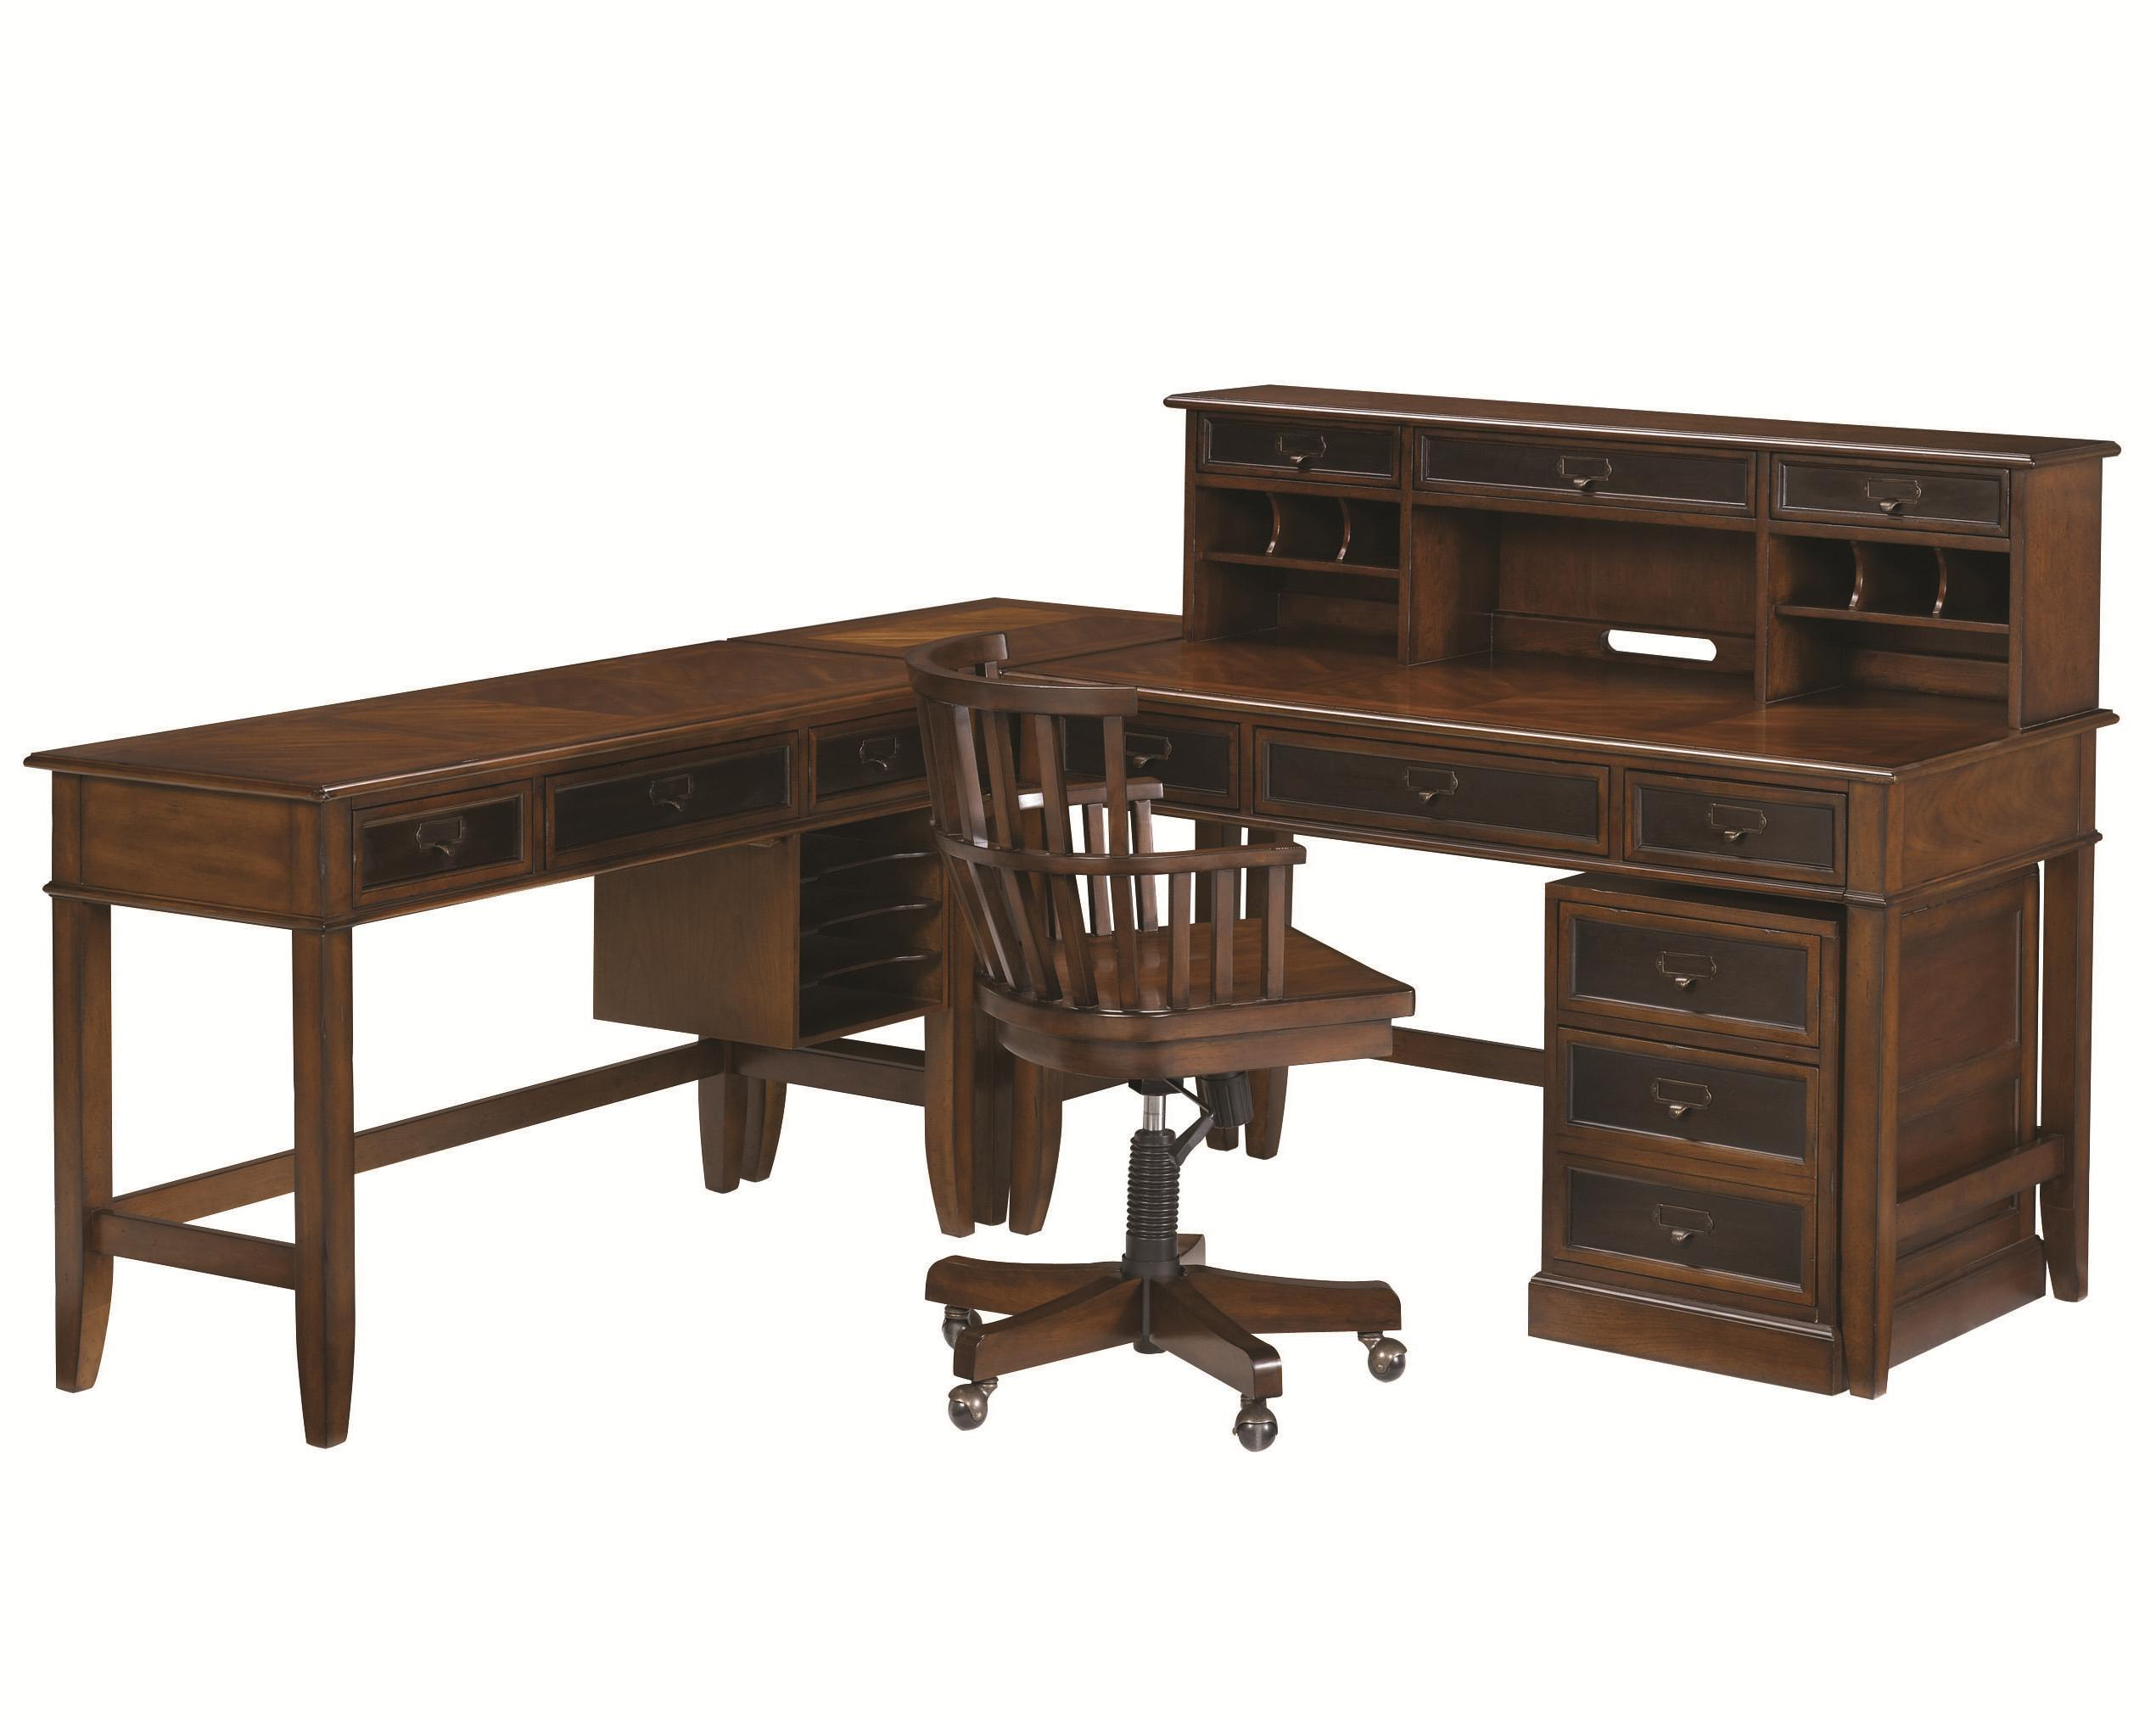 Hammary Mercantile L Shaped Desk and Credenza - Item Number: 050-940+41+42+43+45